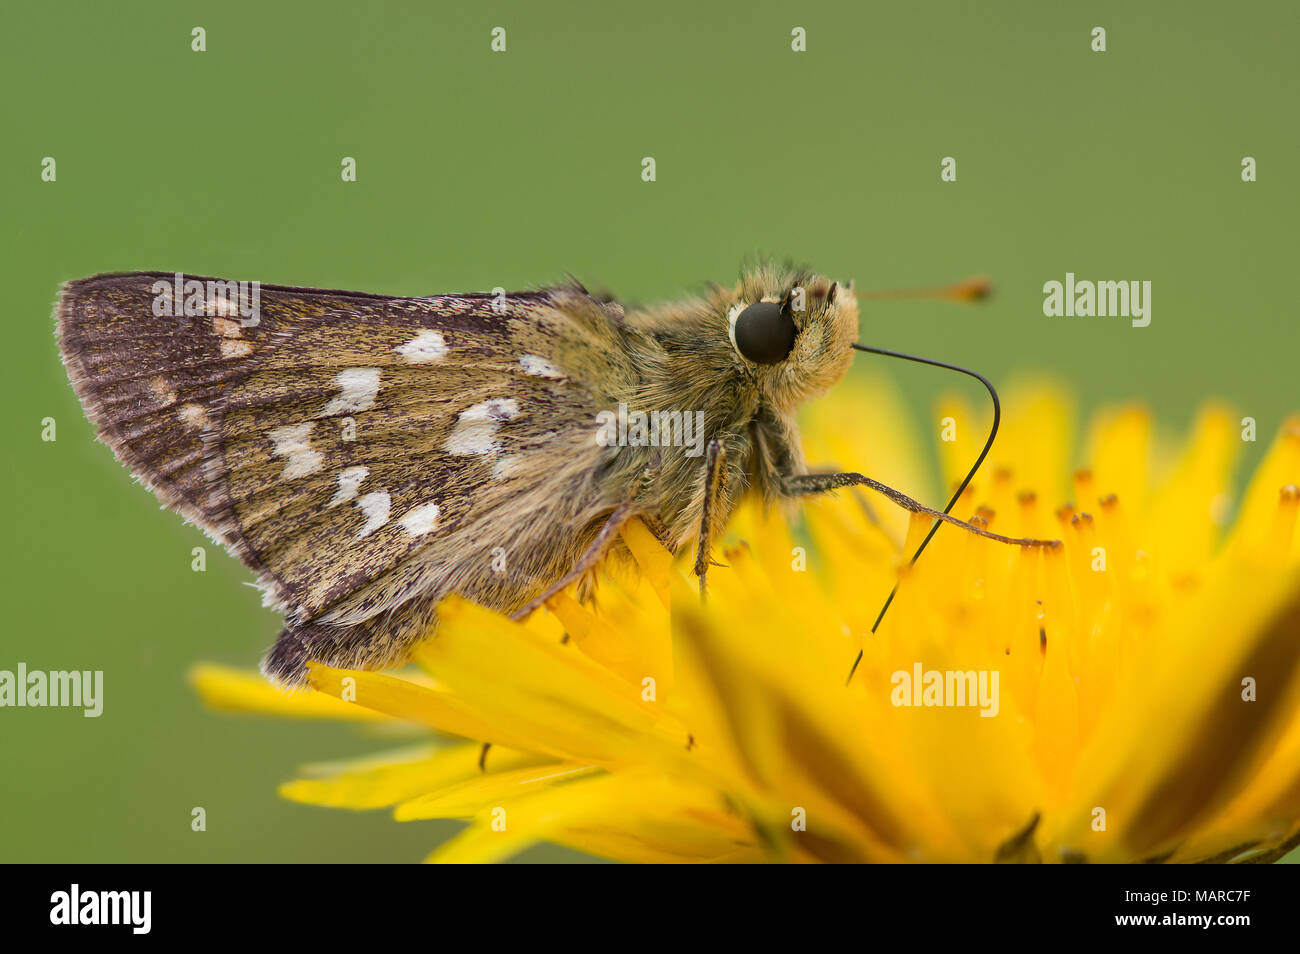 Silver-spotted Skipper (Hesperia comma). Butterfly on a yellow flower. Austria Stock Photo